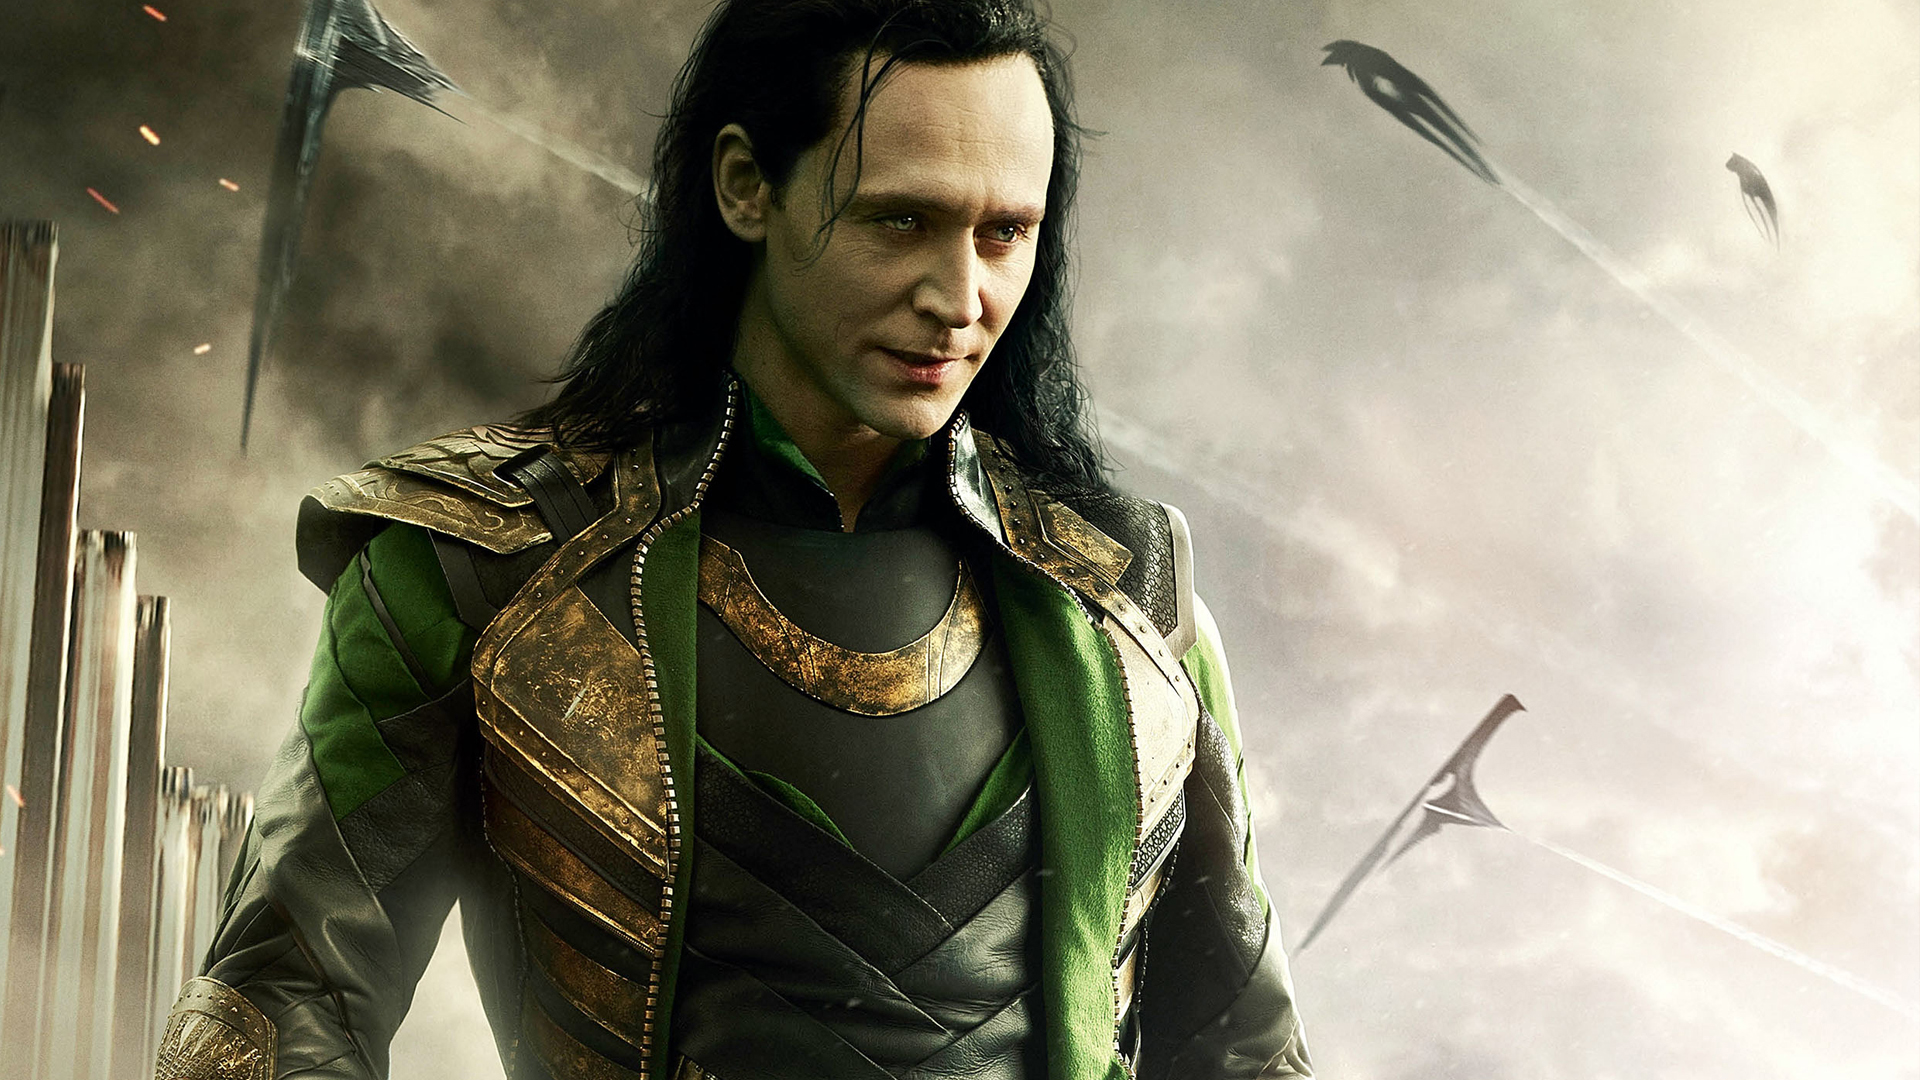 Photo of Did Marvel edit the scene of Loki from Avengers: Age of Ultron?